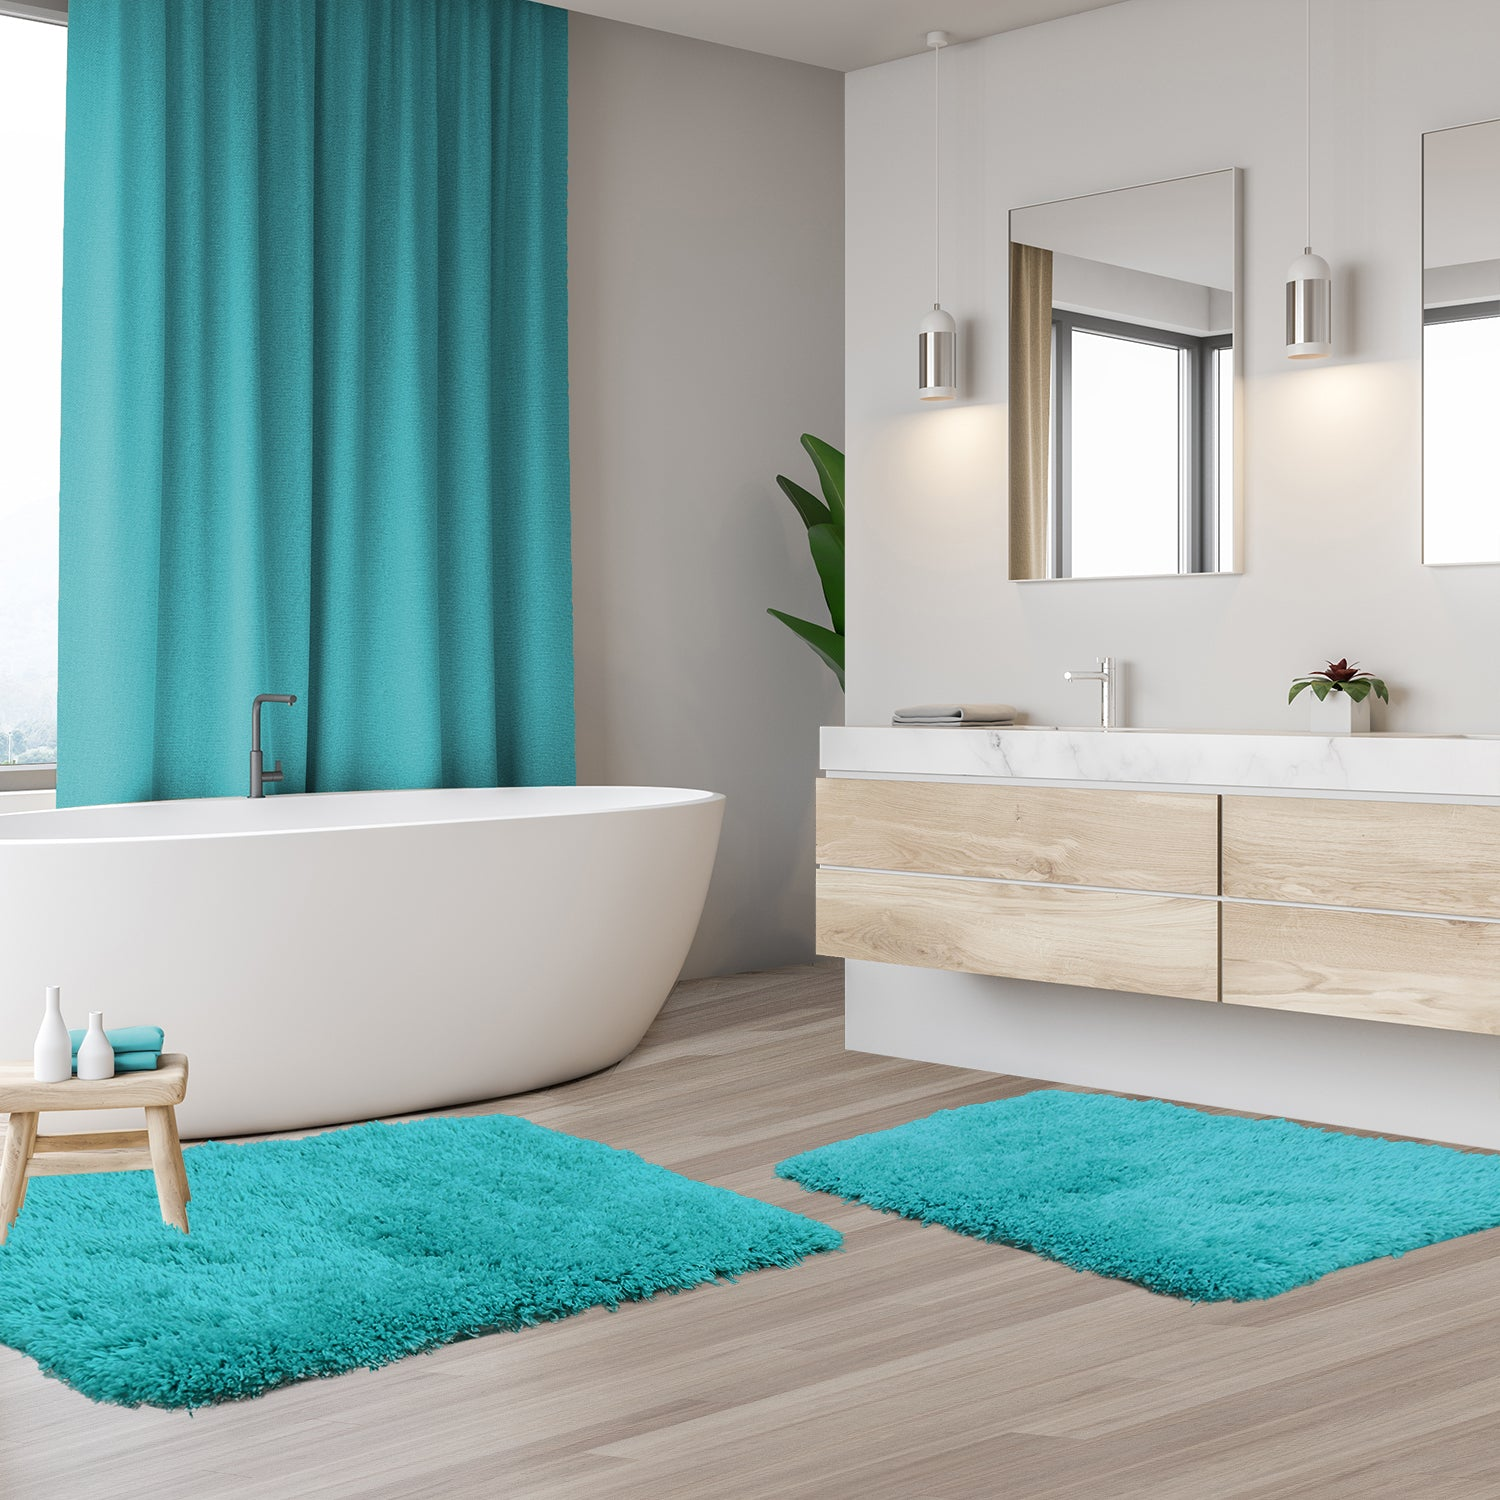 Clara Clark Non Slip Shaggy Bath Rugs - Small Medium, and Large Bath Rugs, Bath Mats In Various Colors and Sizes!